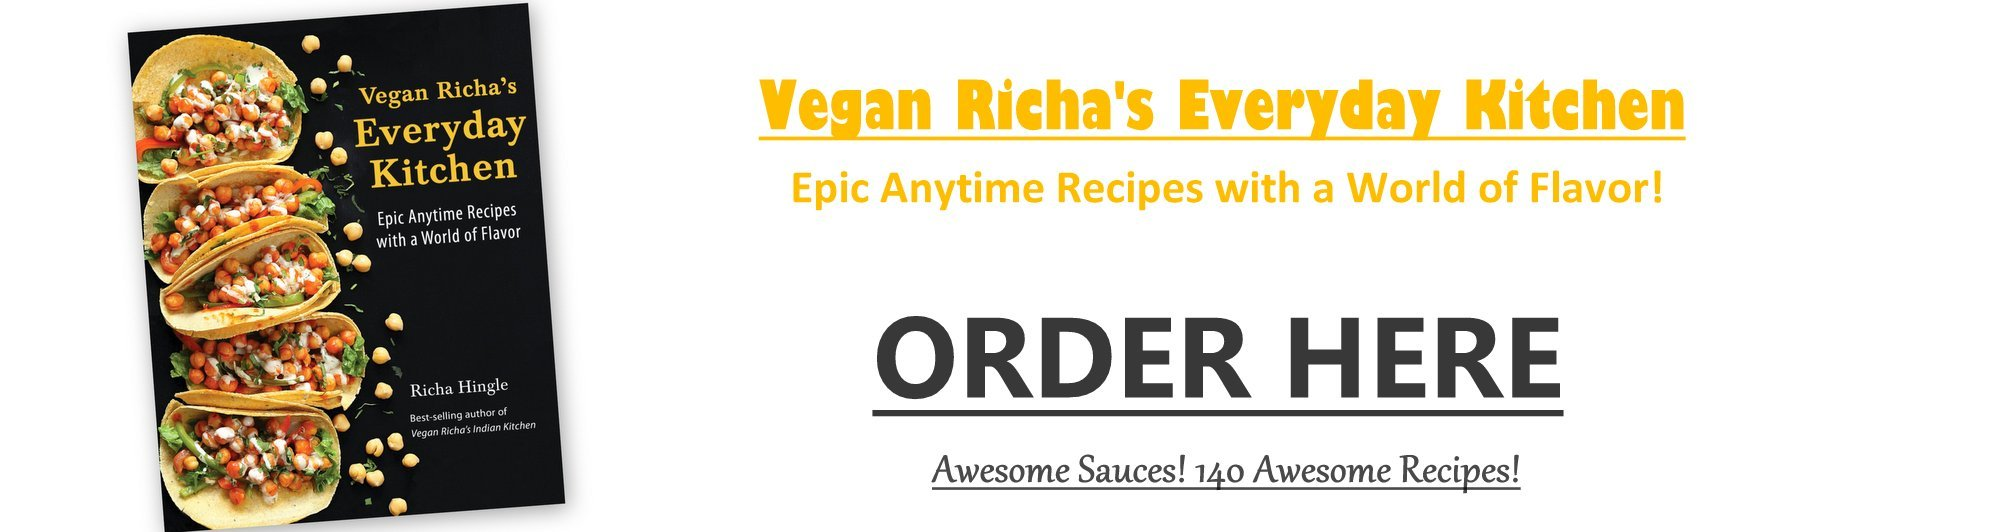 Vegan Richa's Everyday Kitchen Order Now. Available Everywhere Worldwide